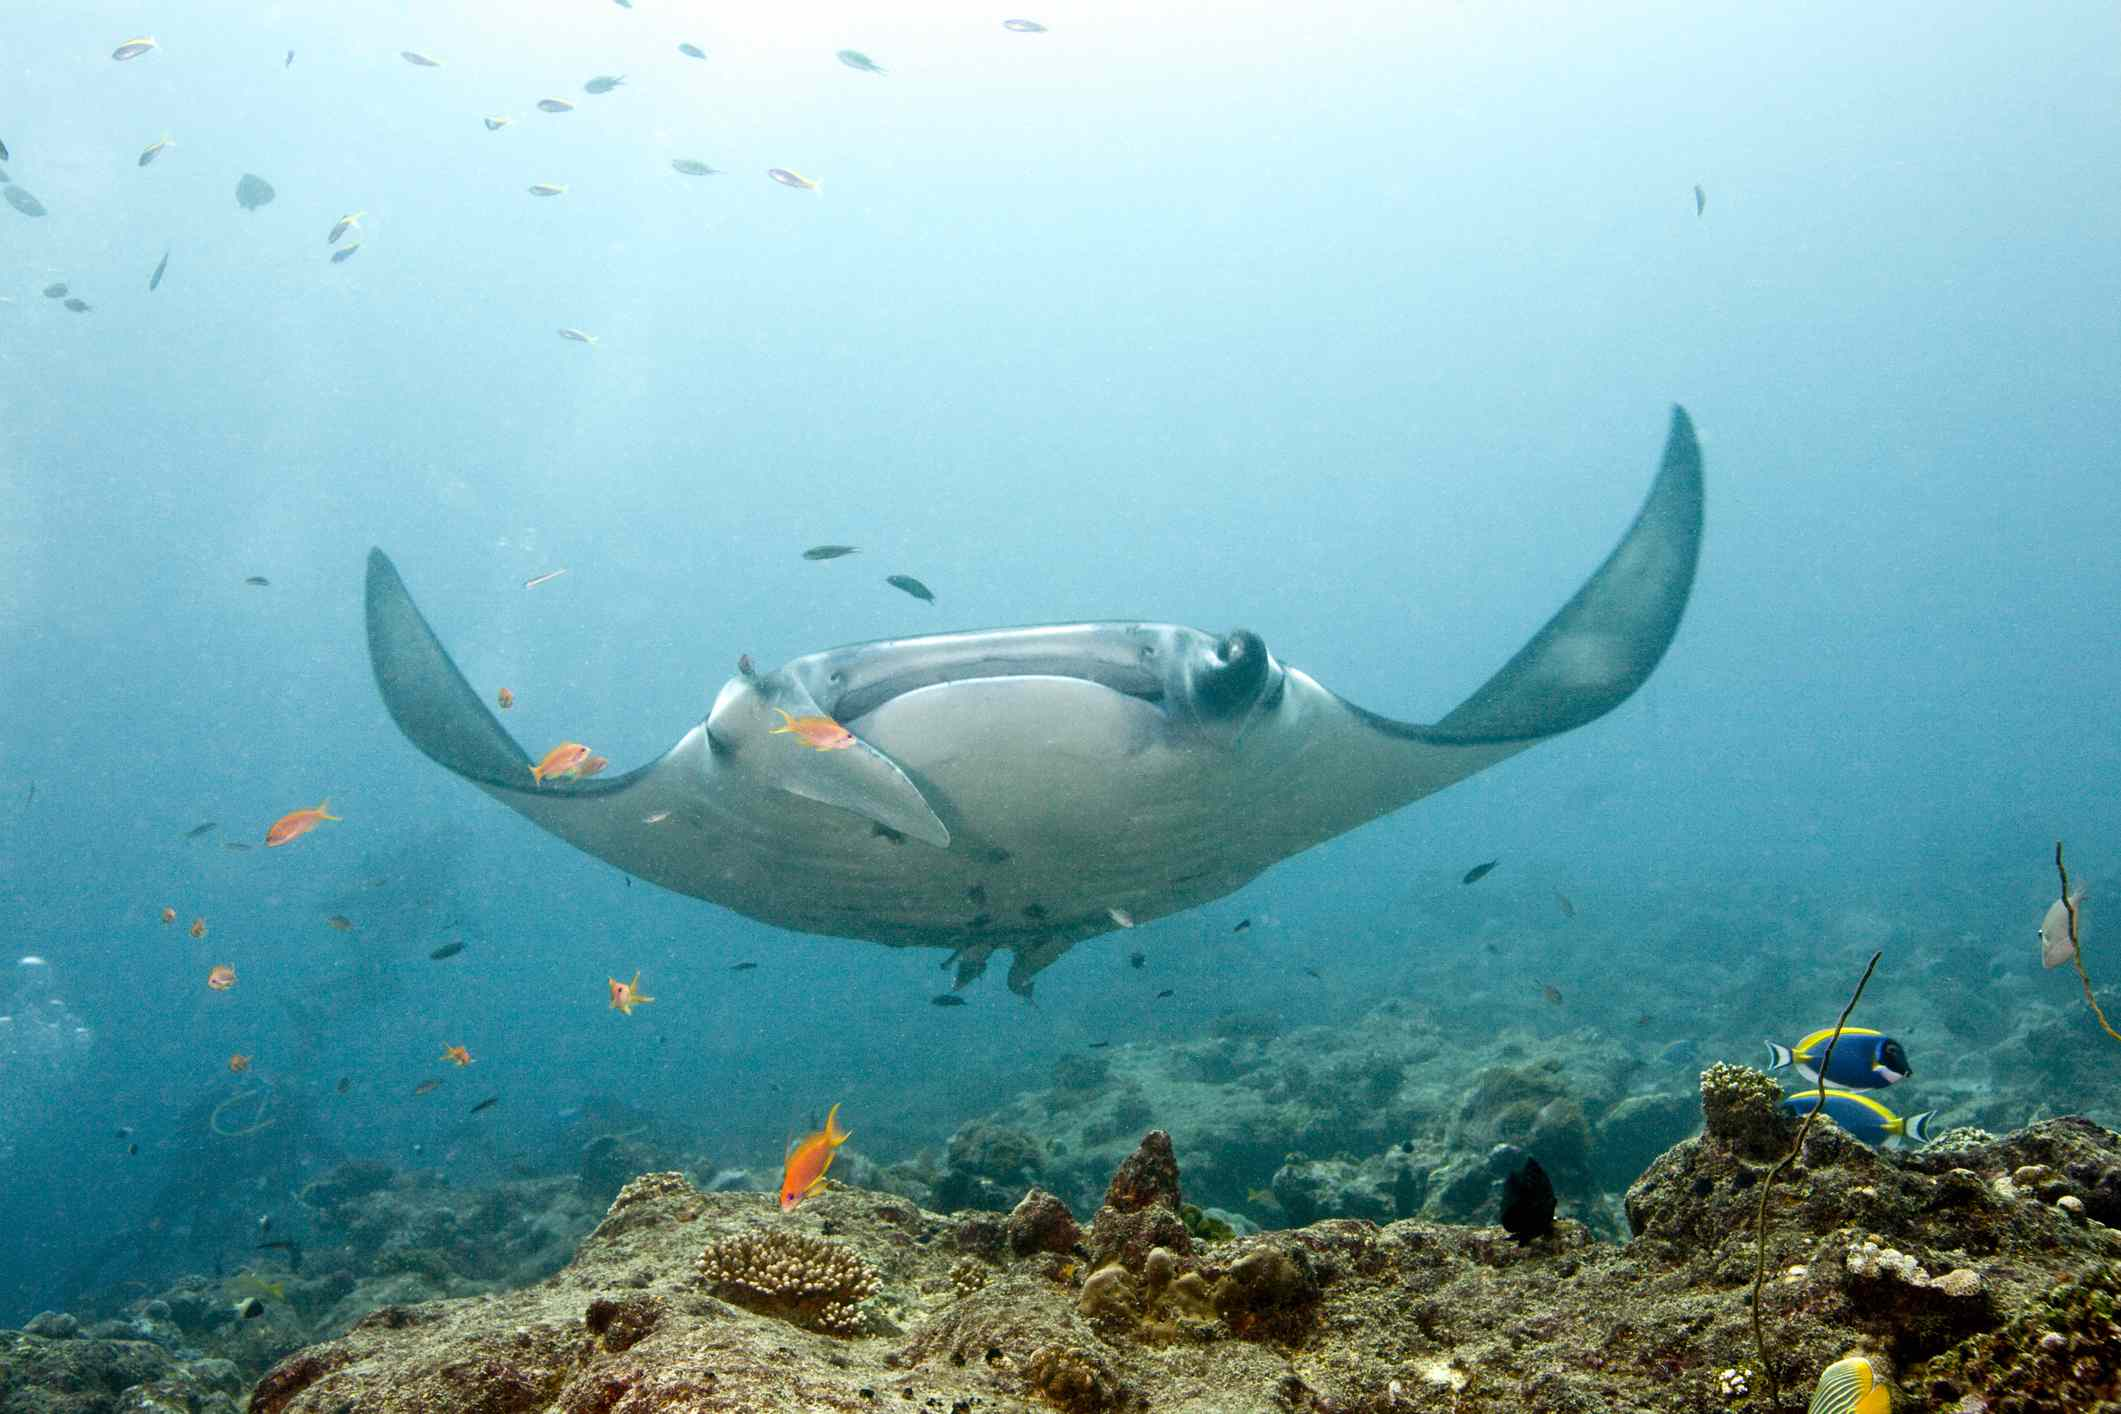 A manta ray, with its wings curved upward, above a shallow reef filled with fish